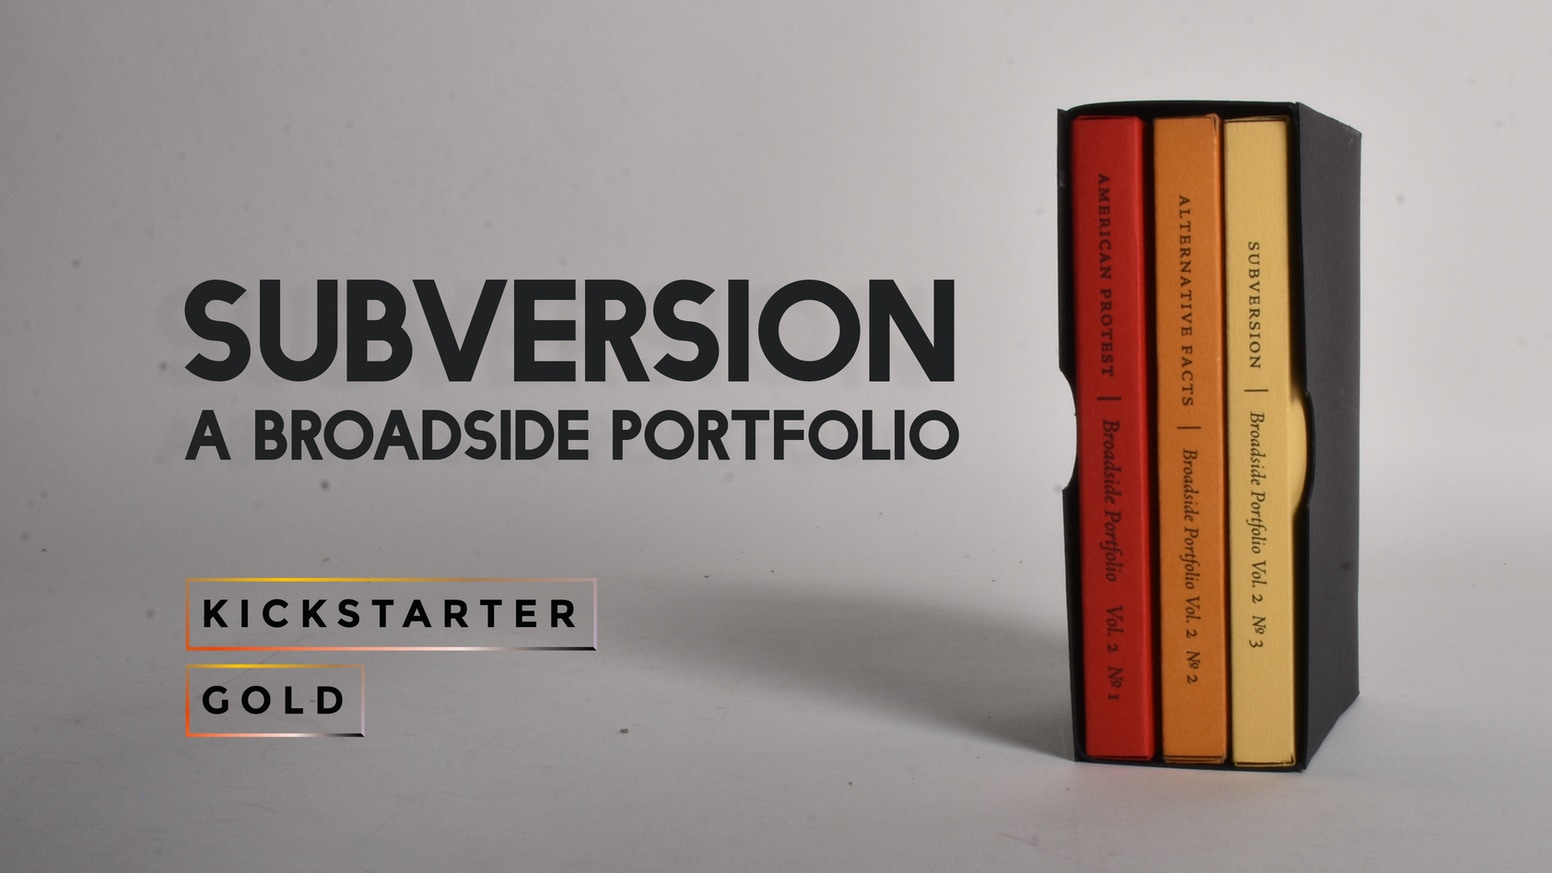 As part of Kickstarter Gold, we present our newest broadside portfolio Subversion, together with our past two in a handsome slipcase.